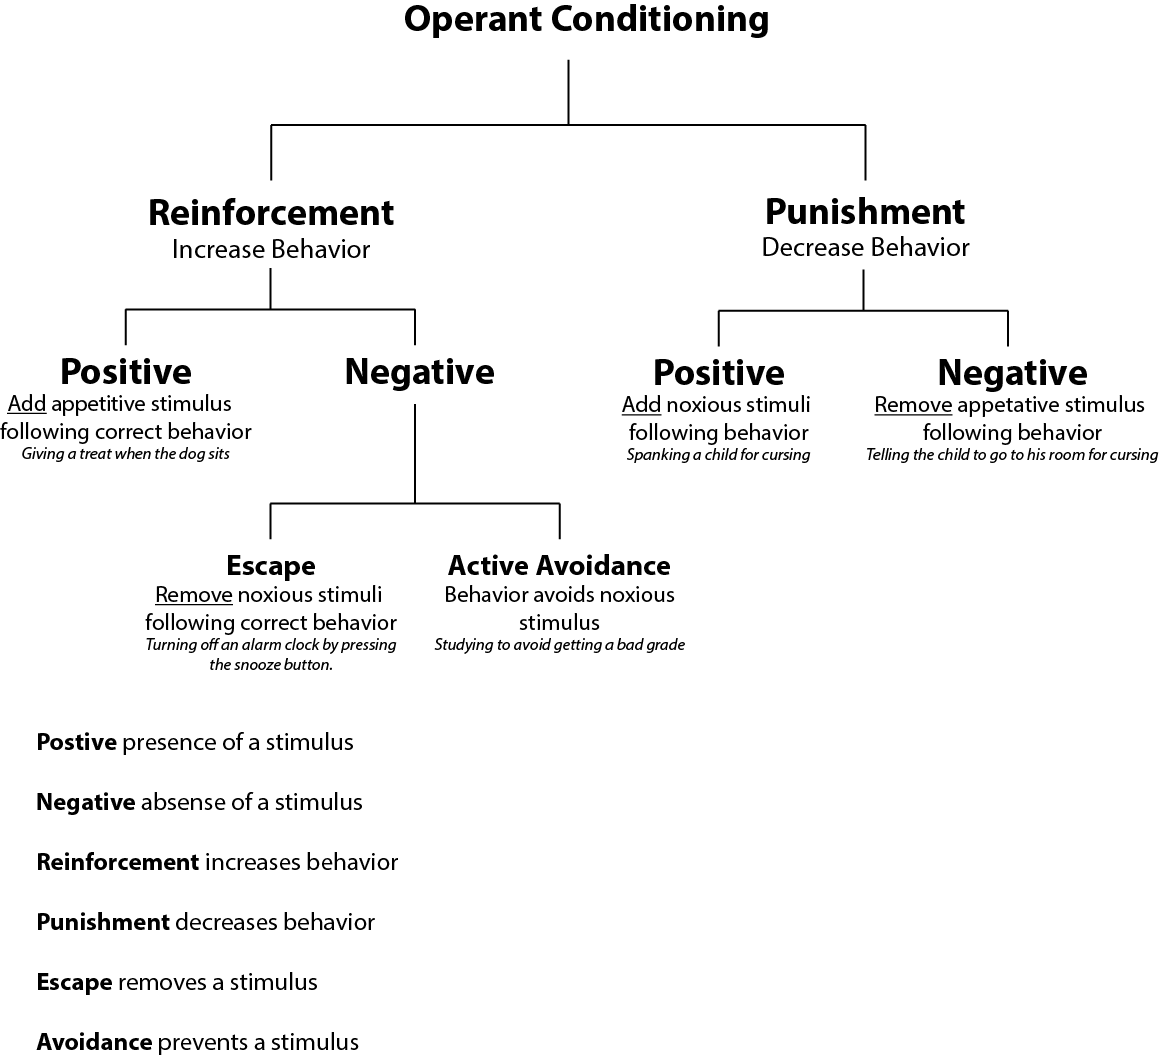 operant conditioning wikipedia. Black Bedroom Furniture Sets. Home Design Ideas